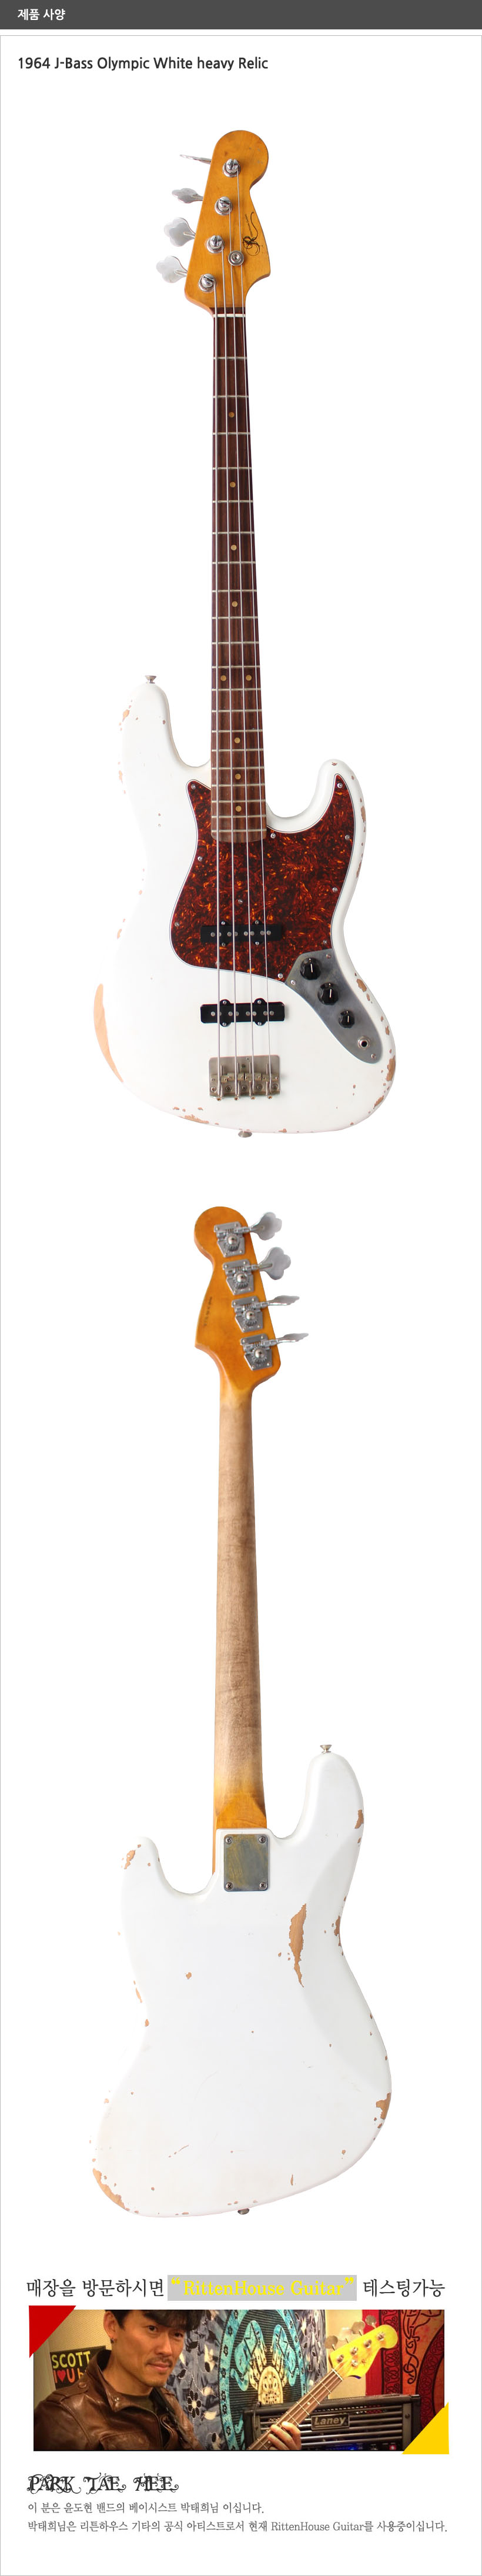 1964 J-Bass Olympic White heavy Relic 제품 사양